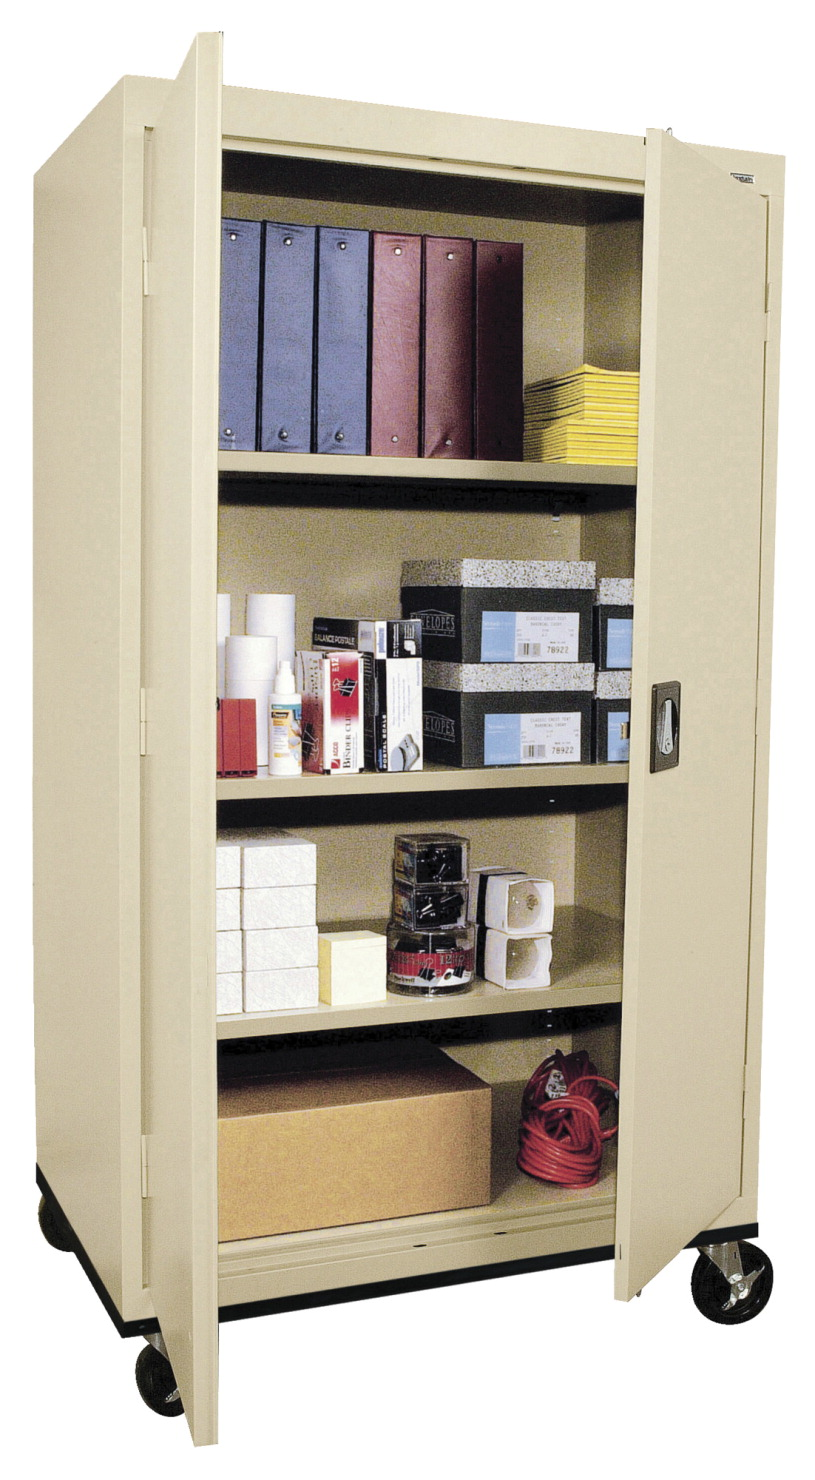 Sandusky Lee Elite 4 Shelf Transport Mobile Cabinet, 36 x 24 x 66 Inches, Various Options